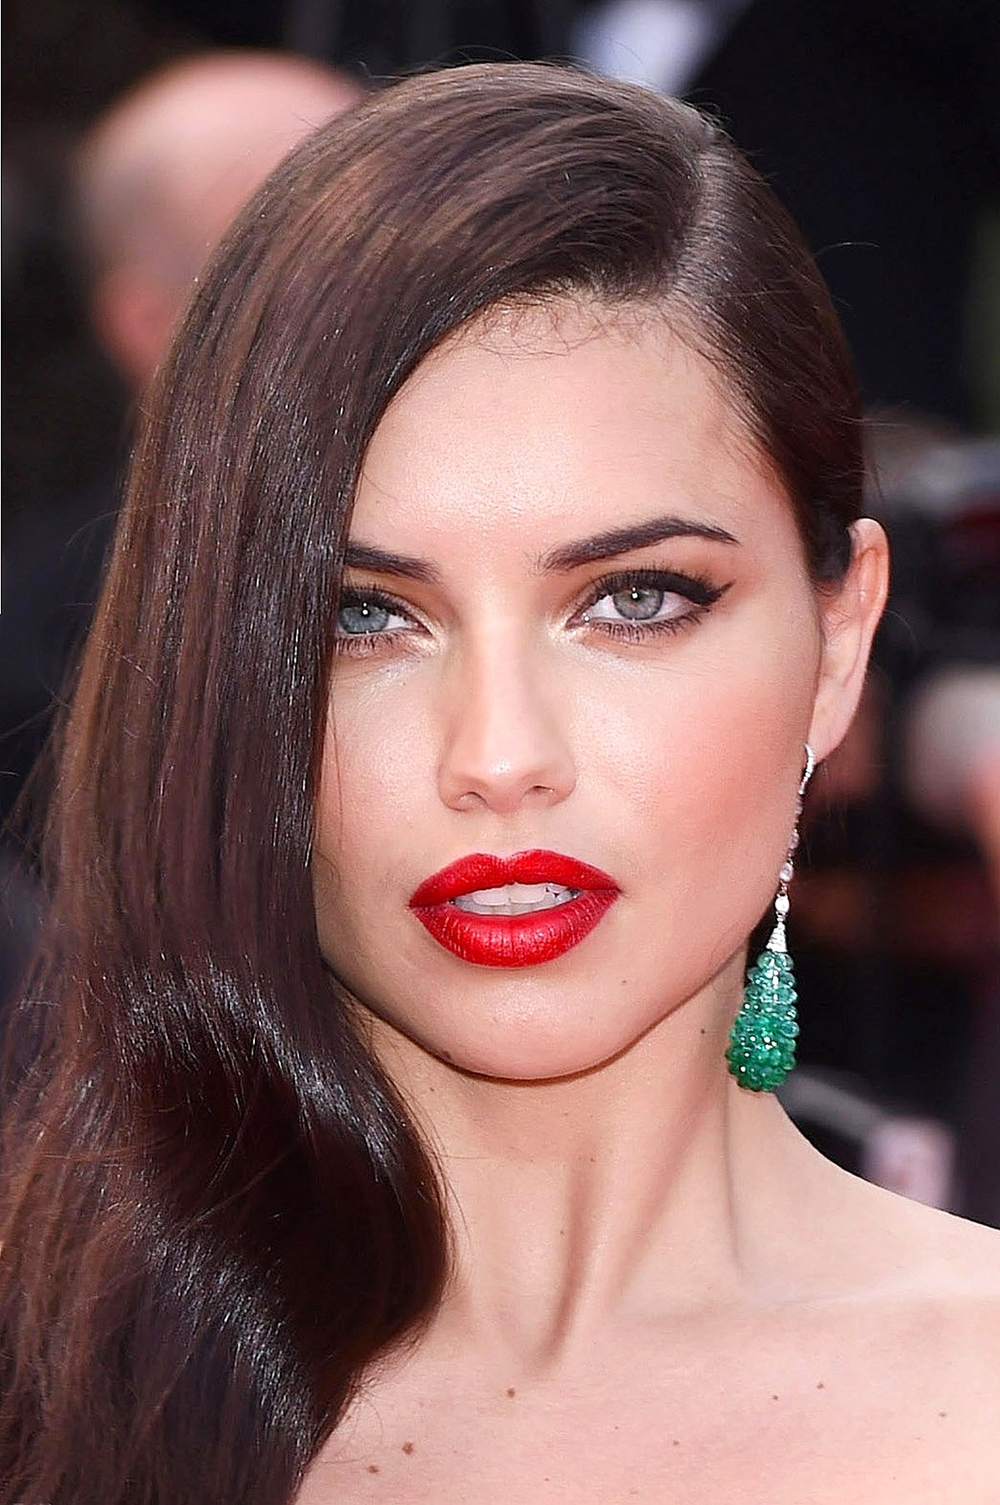 Adriana Lima at the Sicario premiere      Photo by Rex Features